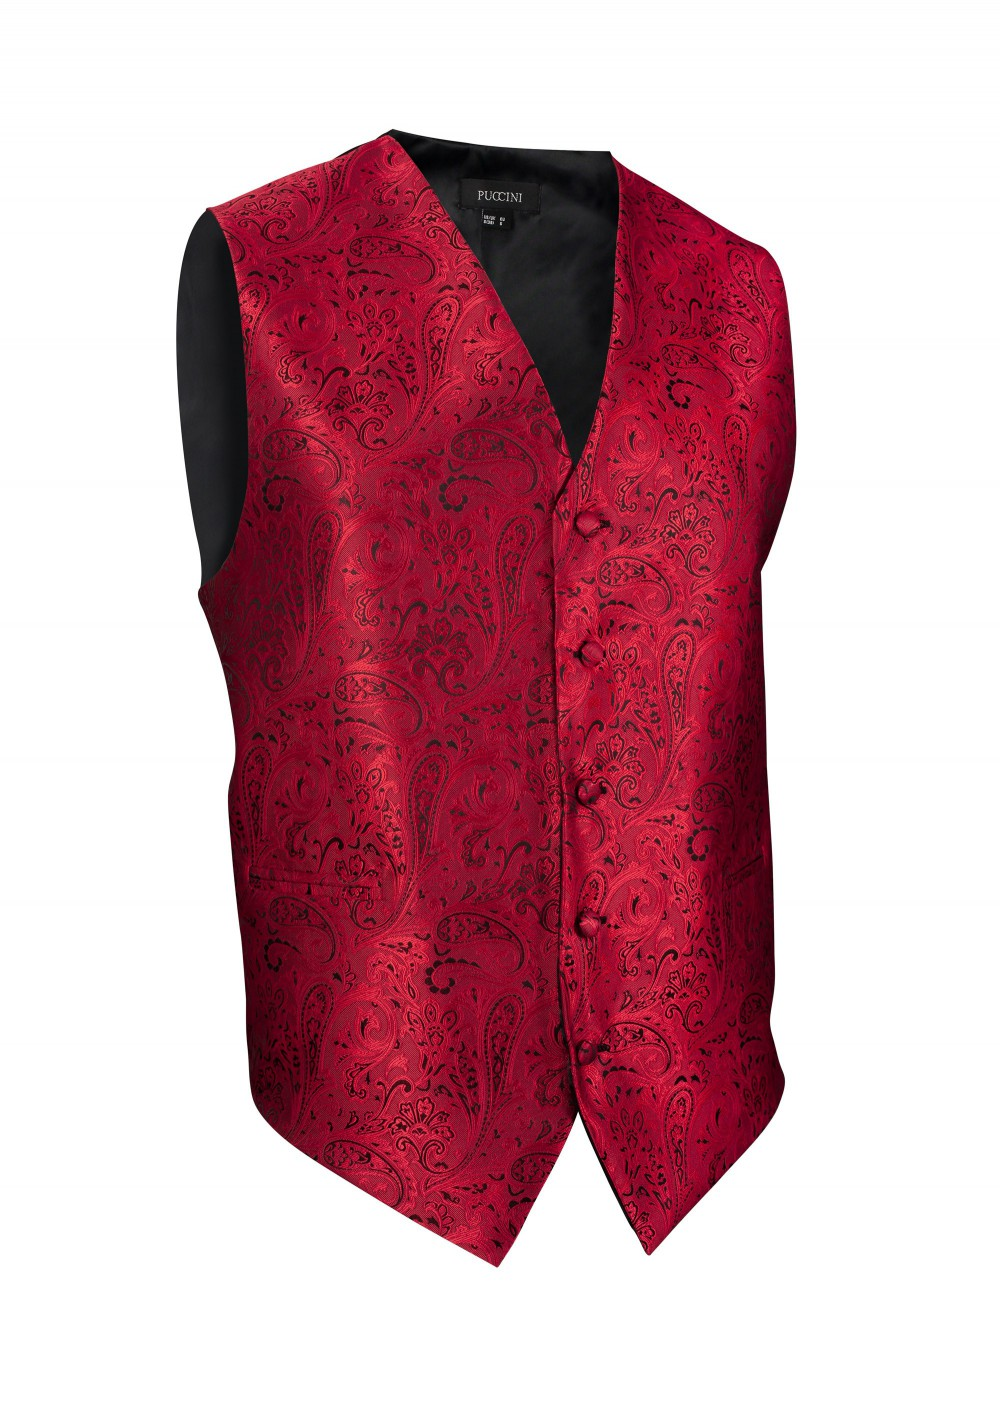 Formal Paisley Vest in Rich Cherry Red